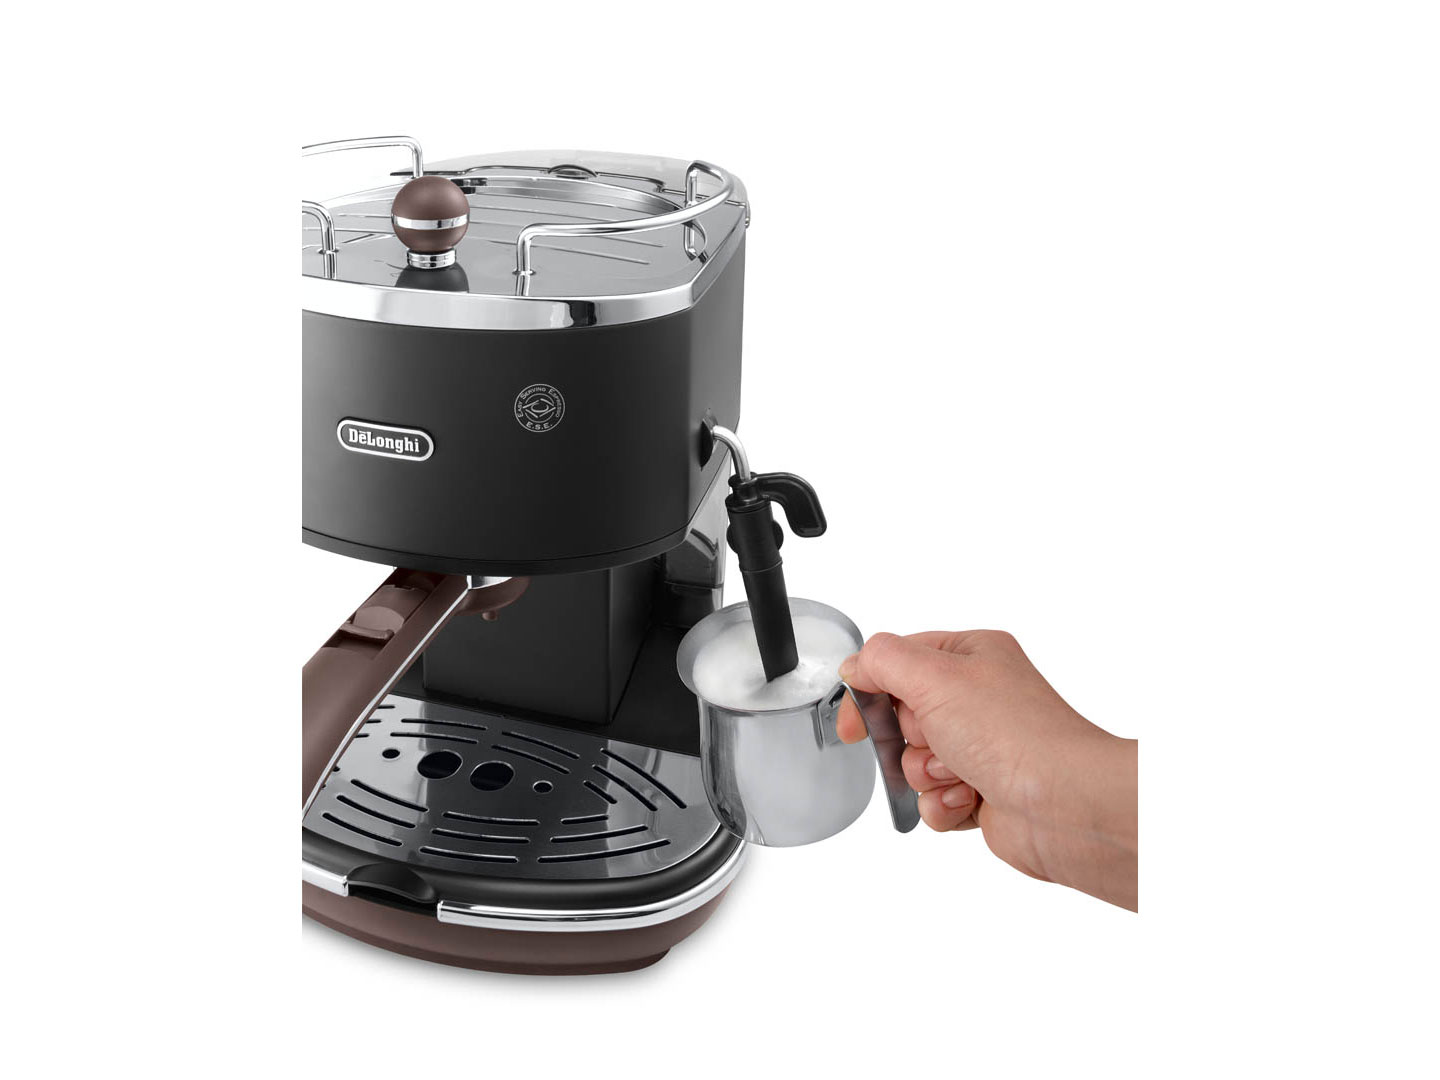 ecov-310bk-detail-cappuccino-system-vintage